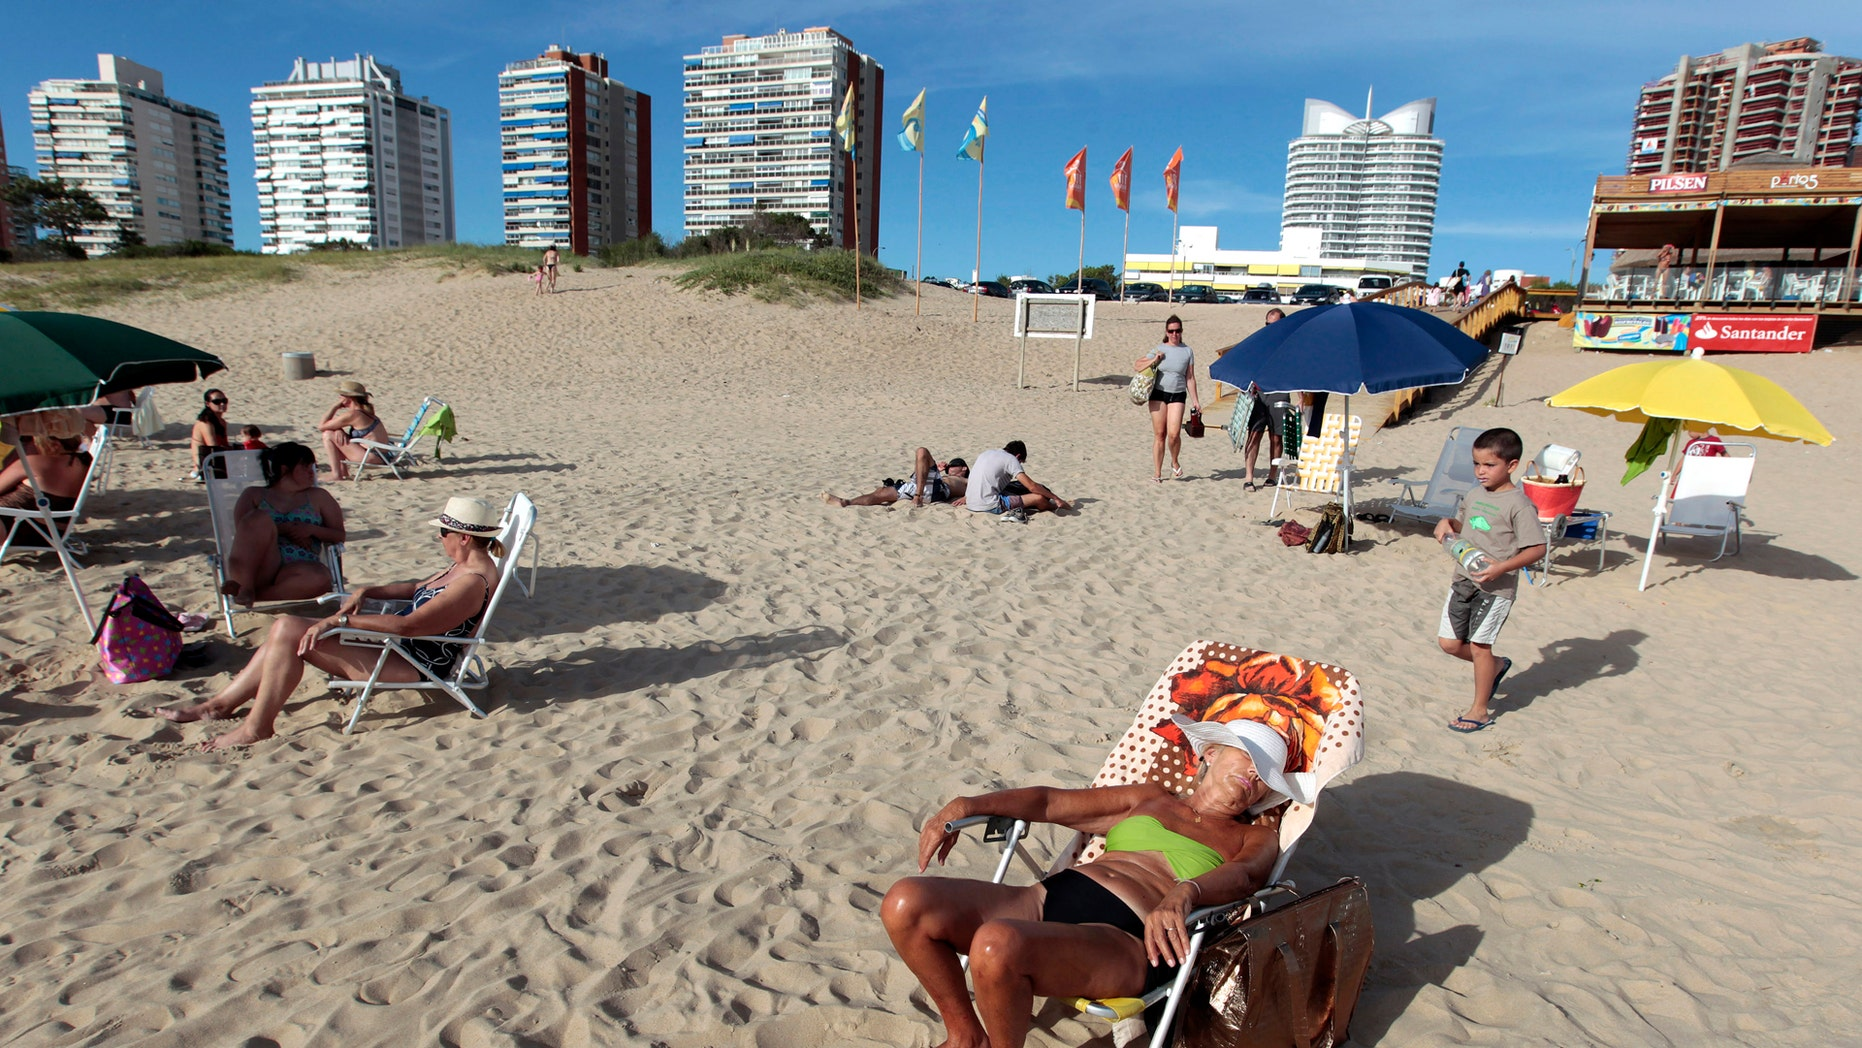 File photo: People sunbathe at the beach of the luxurious seaside resort of Punta del Este February 4, 2013. (REUTERS/Andres Stapff)